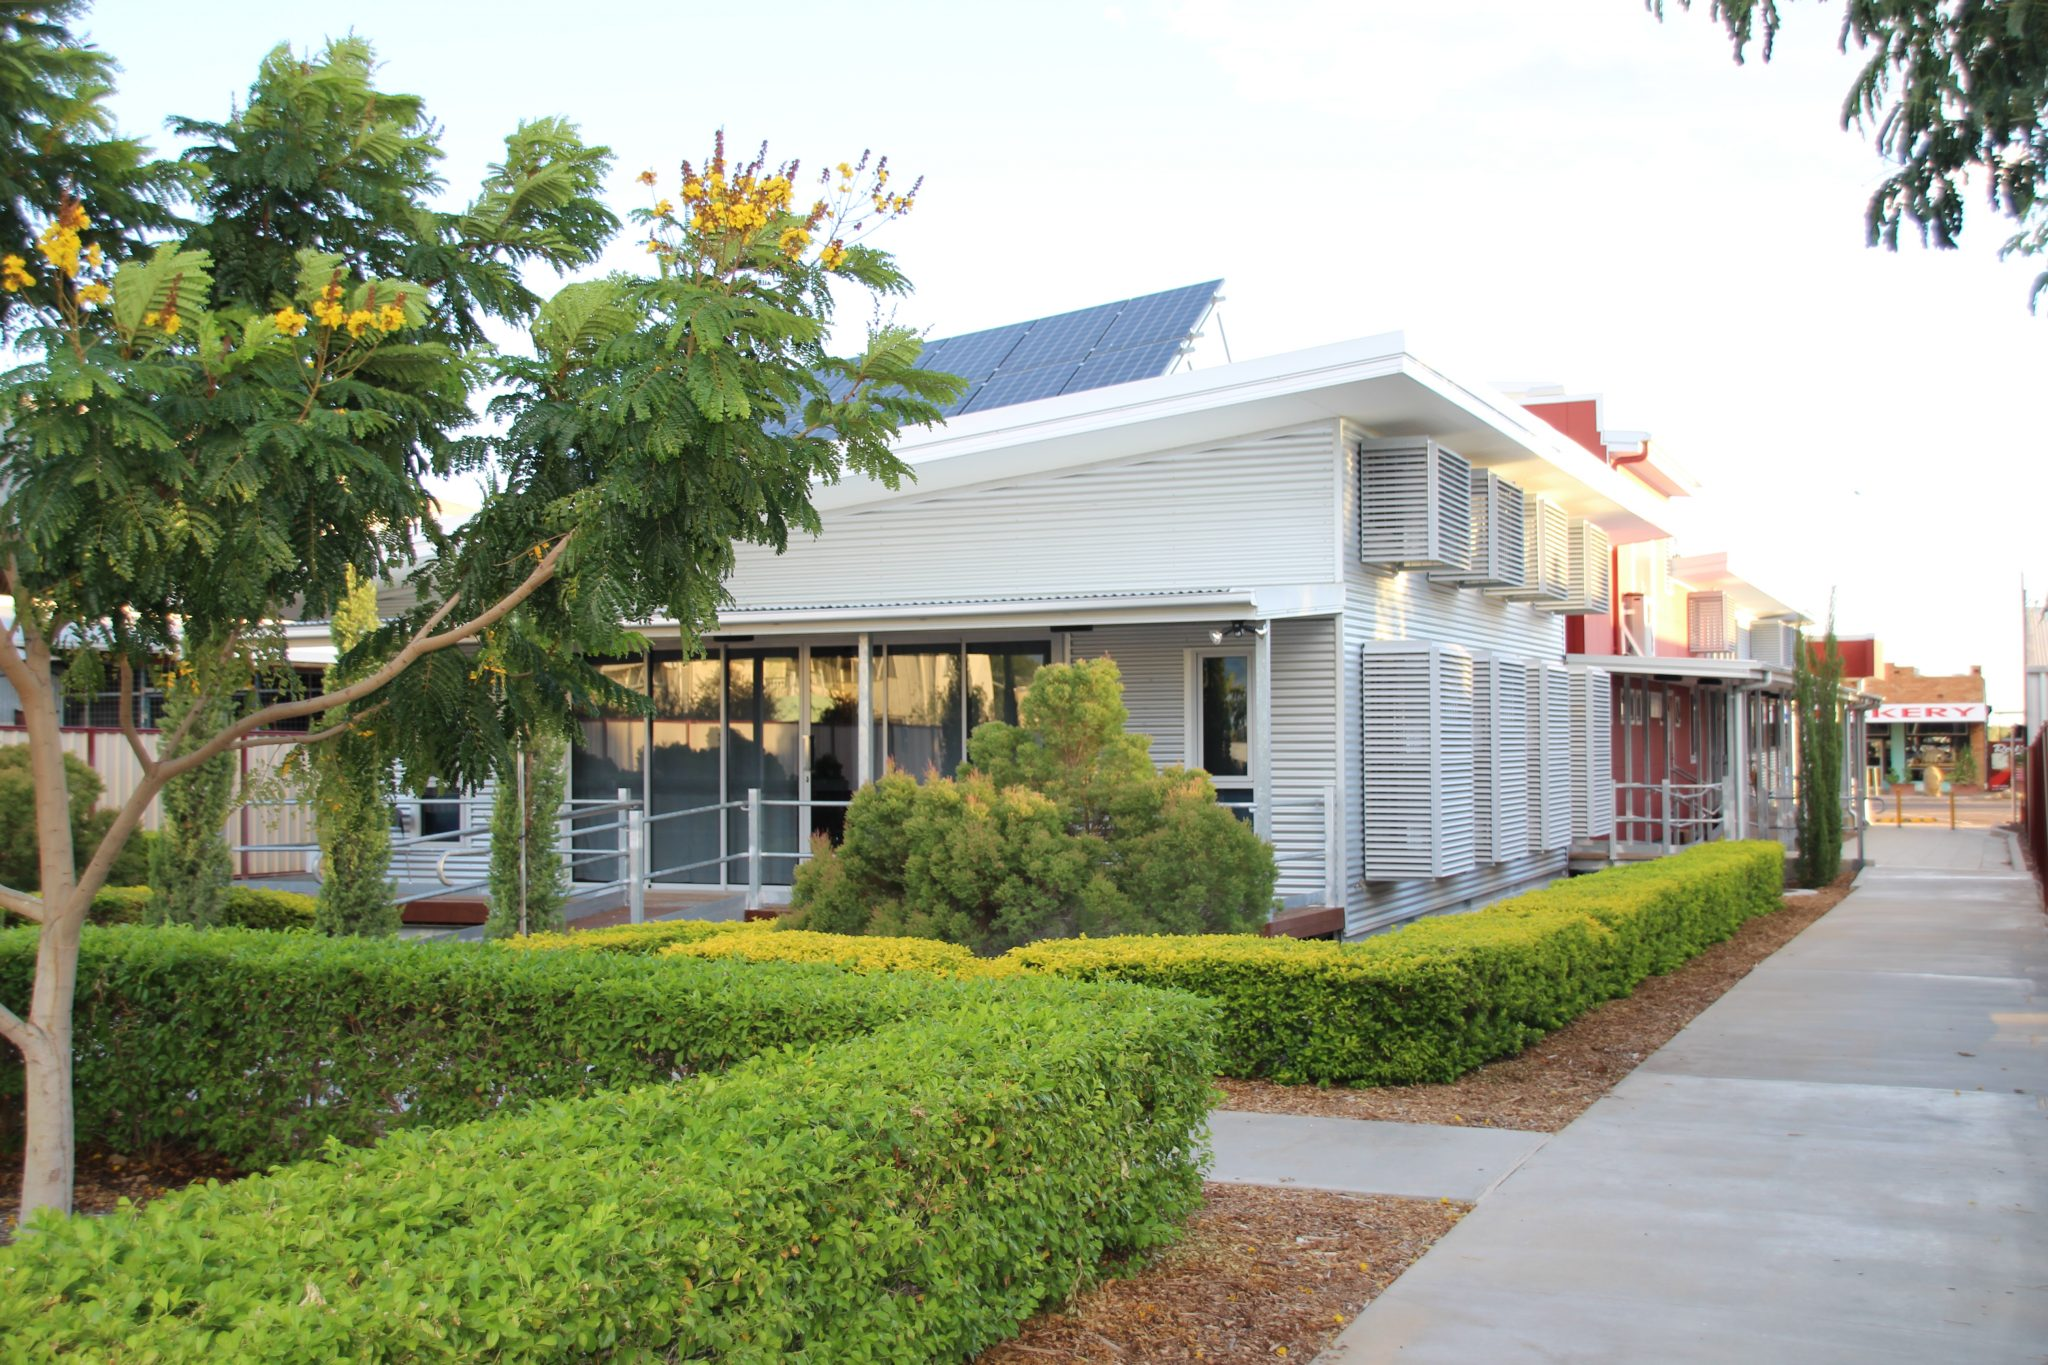 WINTON NEIGHBOURHOOD CENTRE